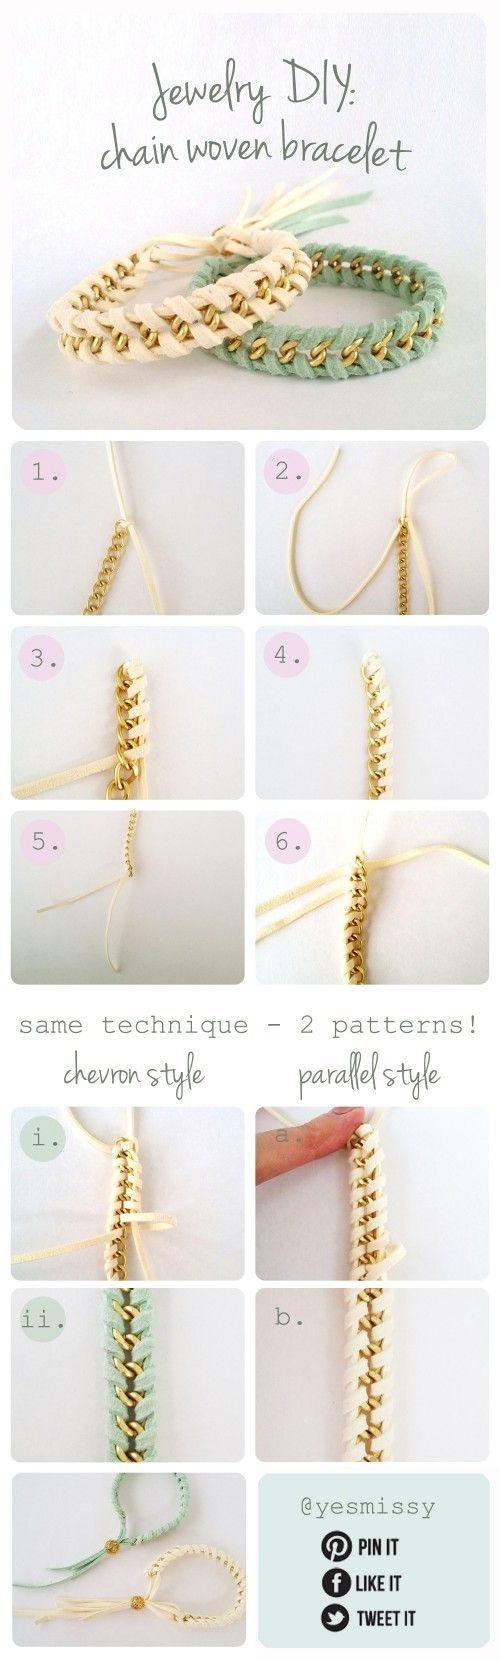 Jewelry DIY: Suede and Chain Woven Bracelet